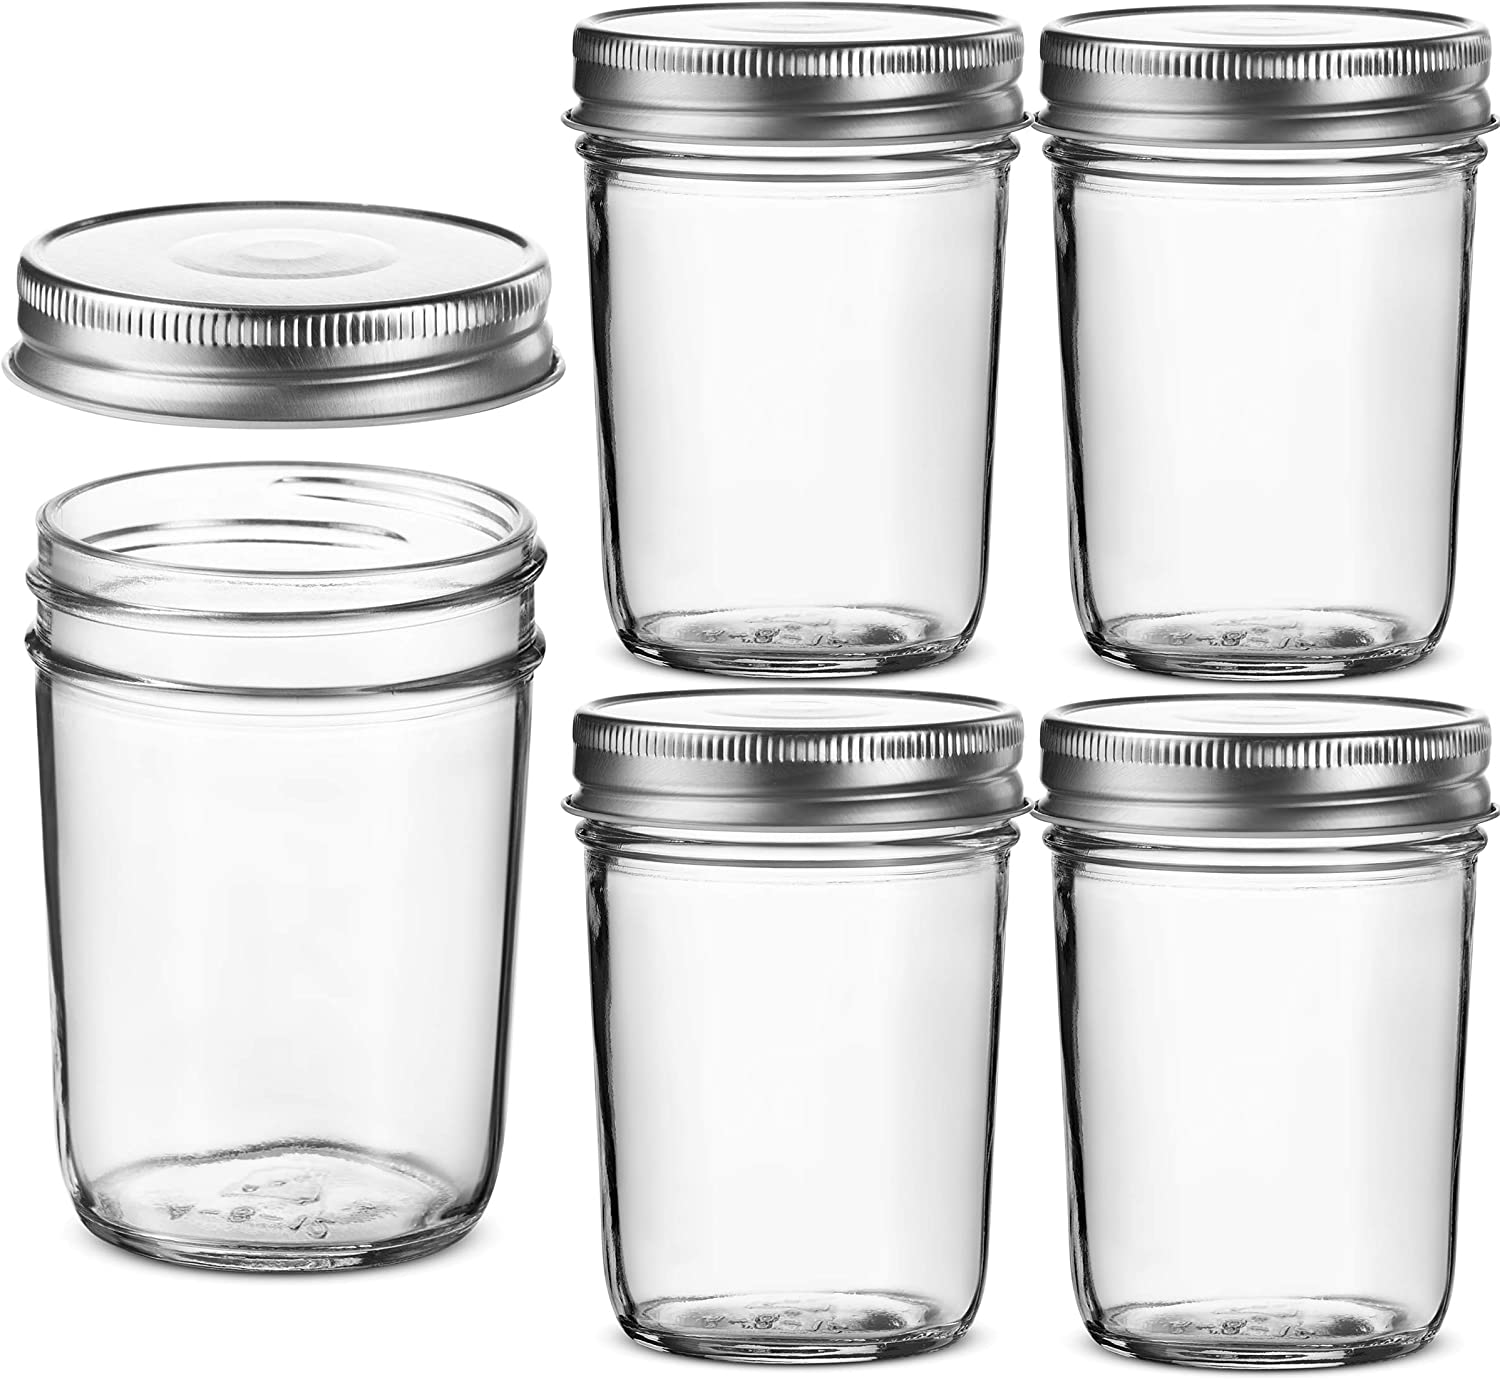 Glass Regular Mouth Mason Jars, 8 Ounce Glass Jars with Silver Metal Airtight Lids for Meal Prep, Food Storage, Canning, Drinking, for Overnight Oats, Jelly, Dry Food, Spices, Salads, Yogurt (5 Pack)